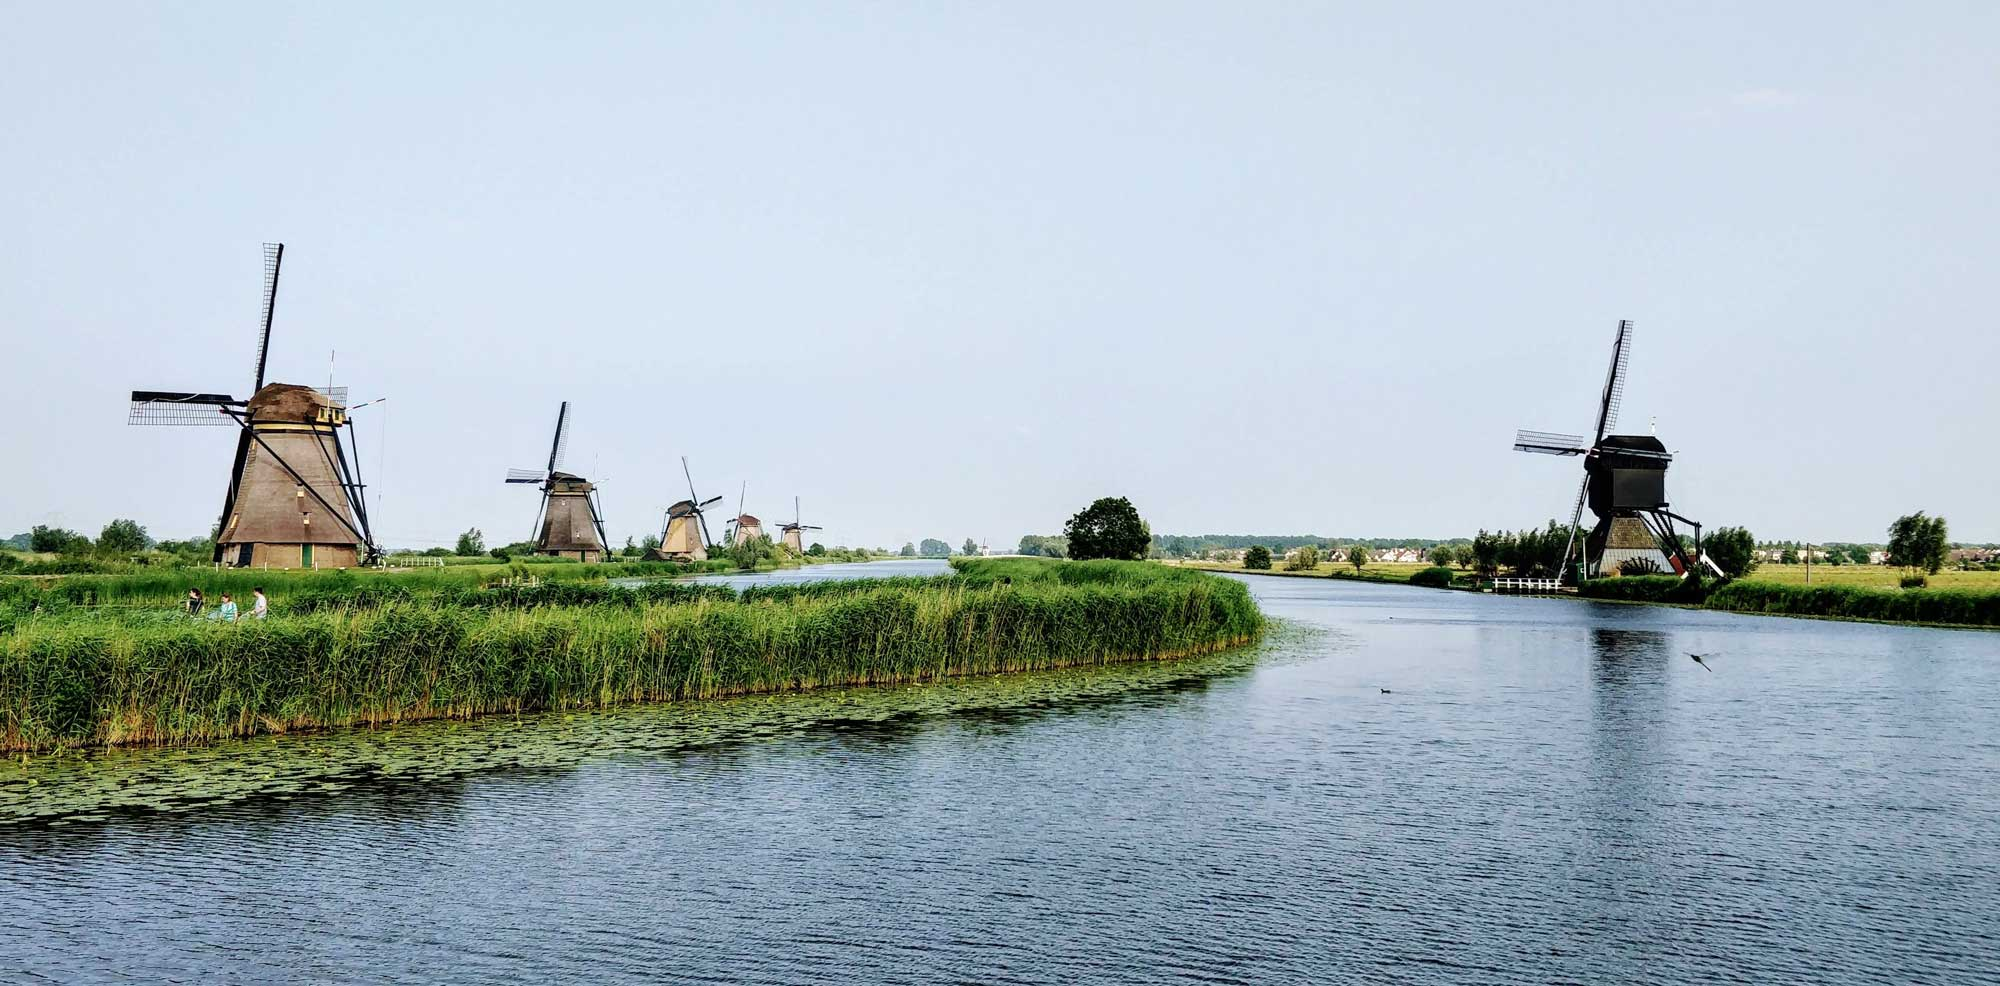 The Netherlands. Photo: Vishwas Katti/Unsplash.